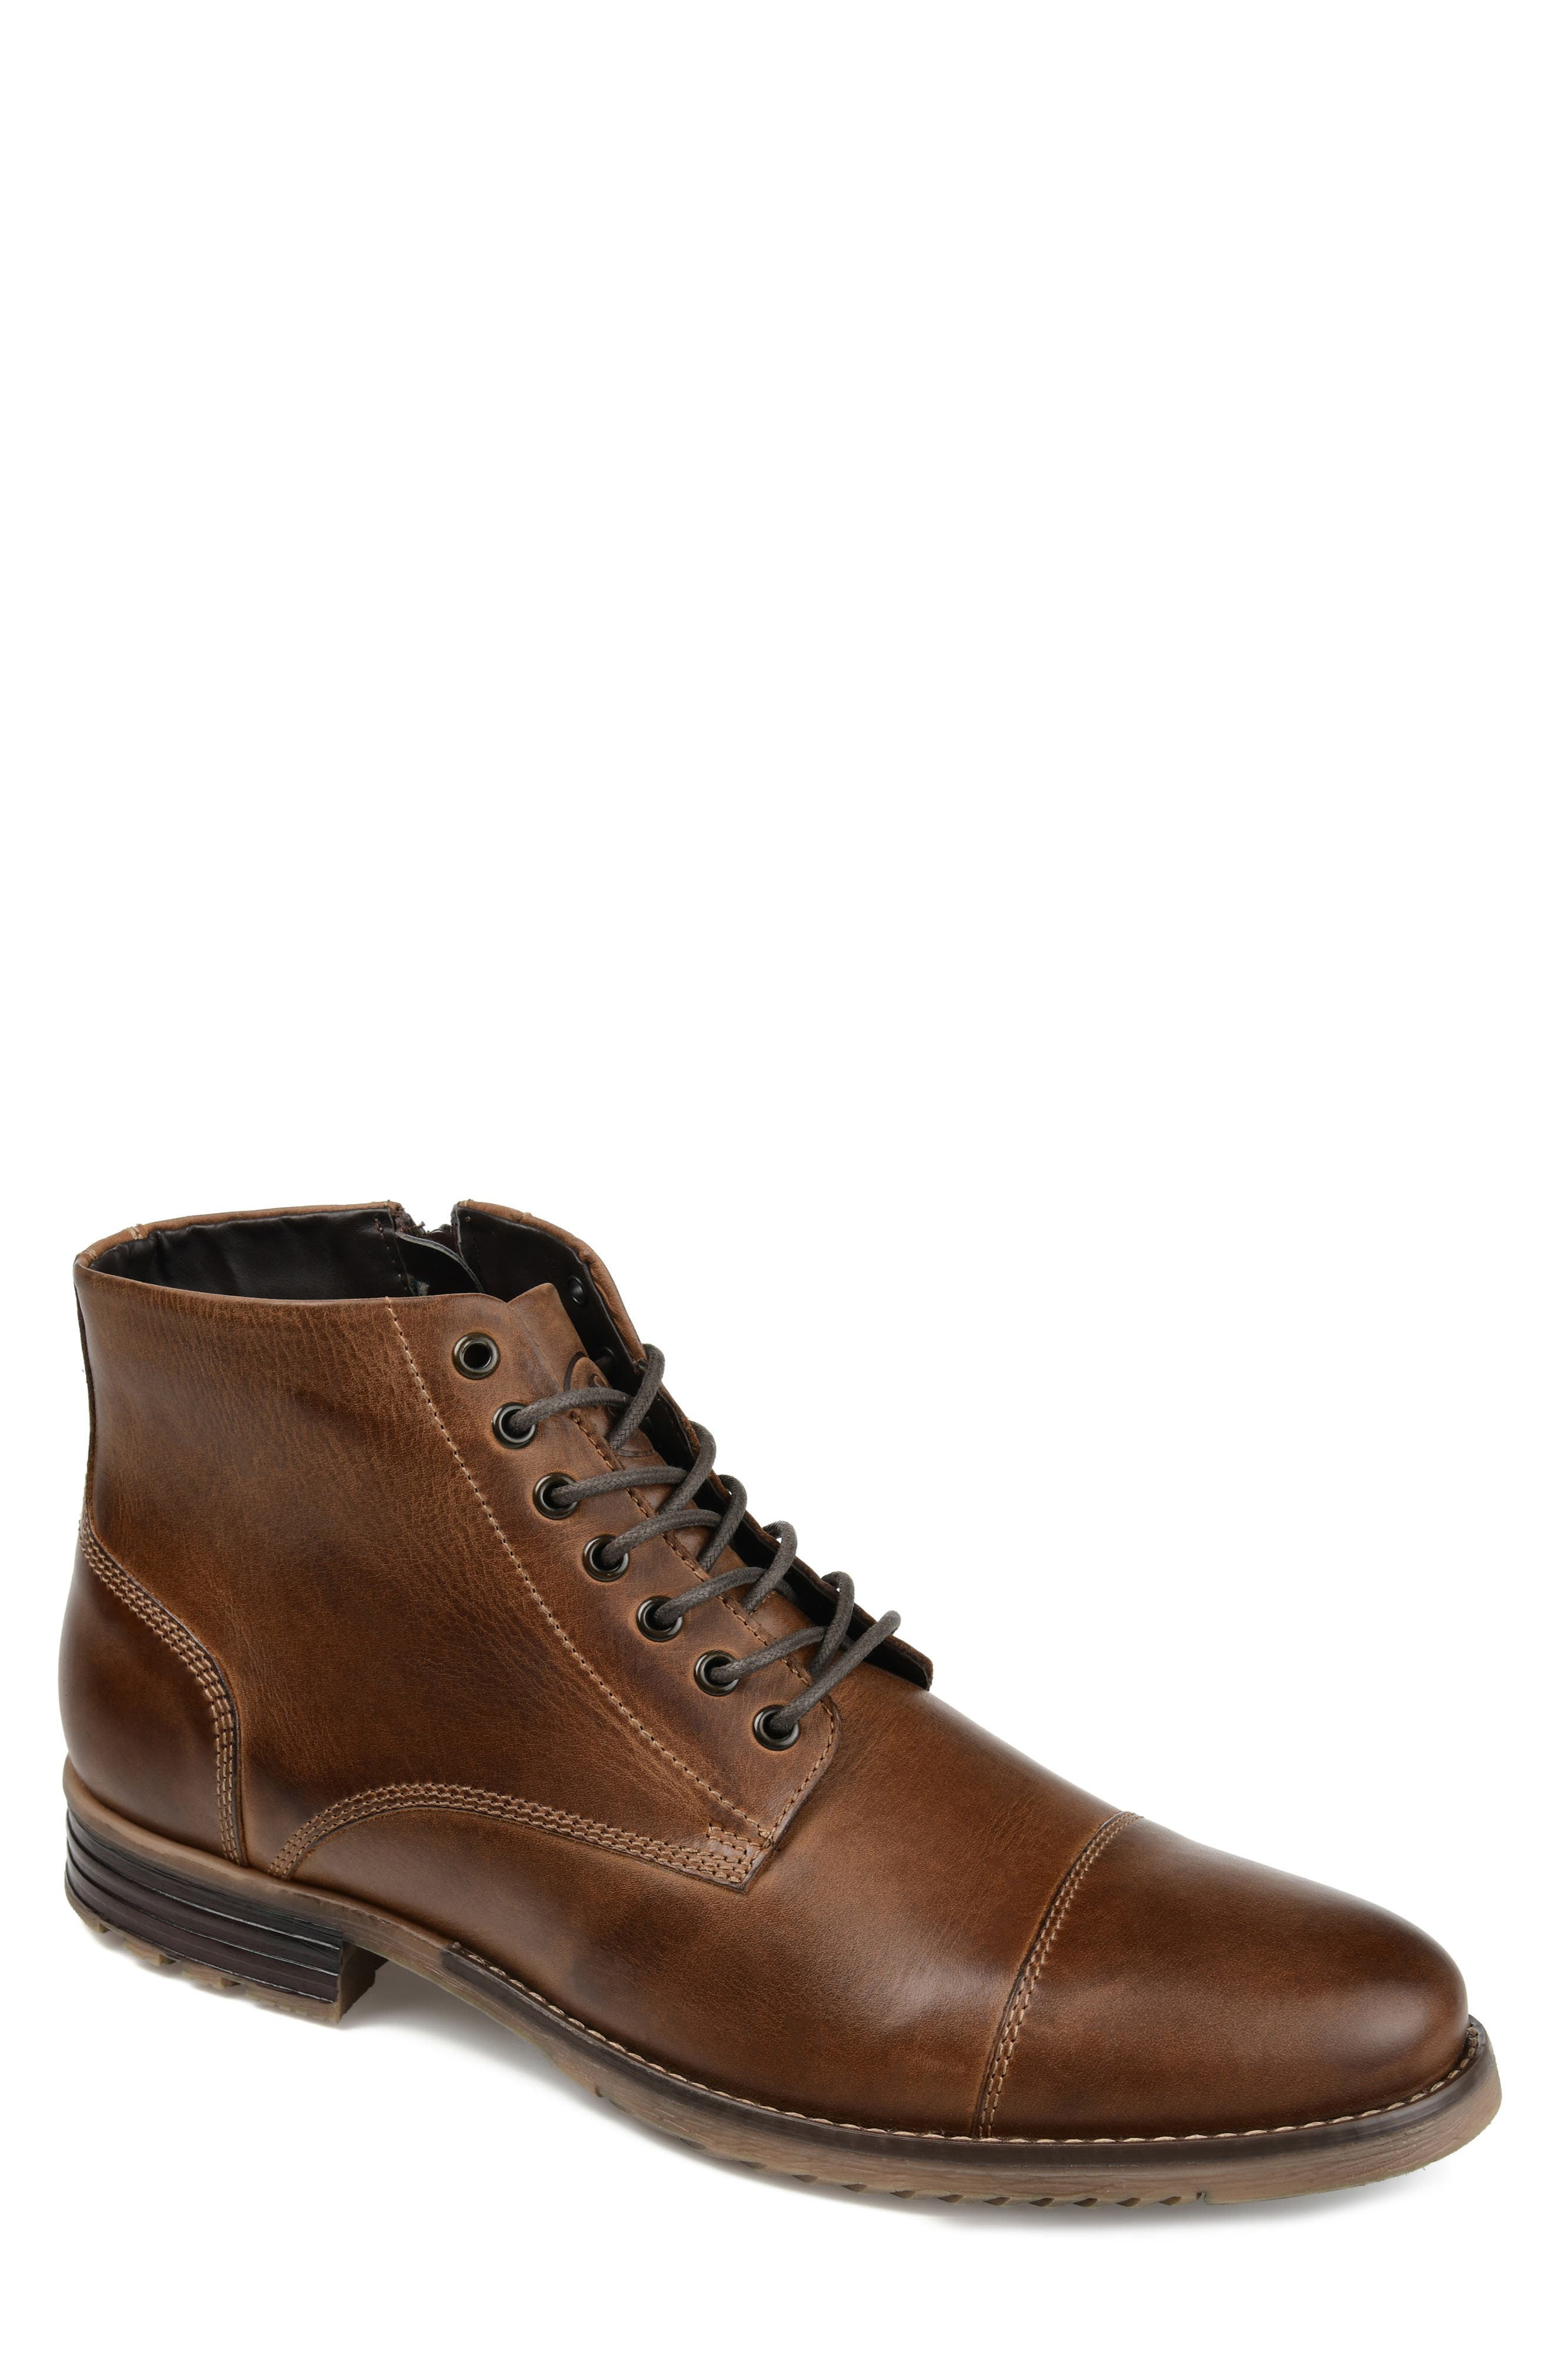 Clean lines and simple detailing define a boot crafted from polished fine-grain leather with a lightly lugged sole grounding casual, versatile look. Style Name: Thomas & Vine Barton Cap Toe Boot (Men). Style Number: 6062514. Available in stores.